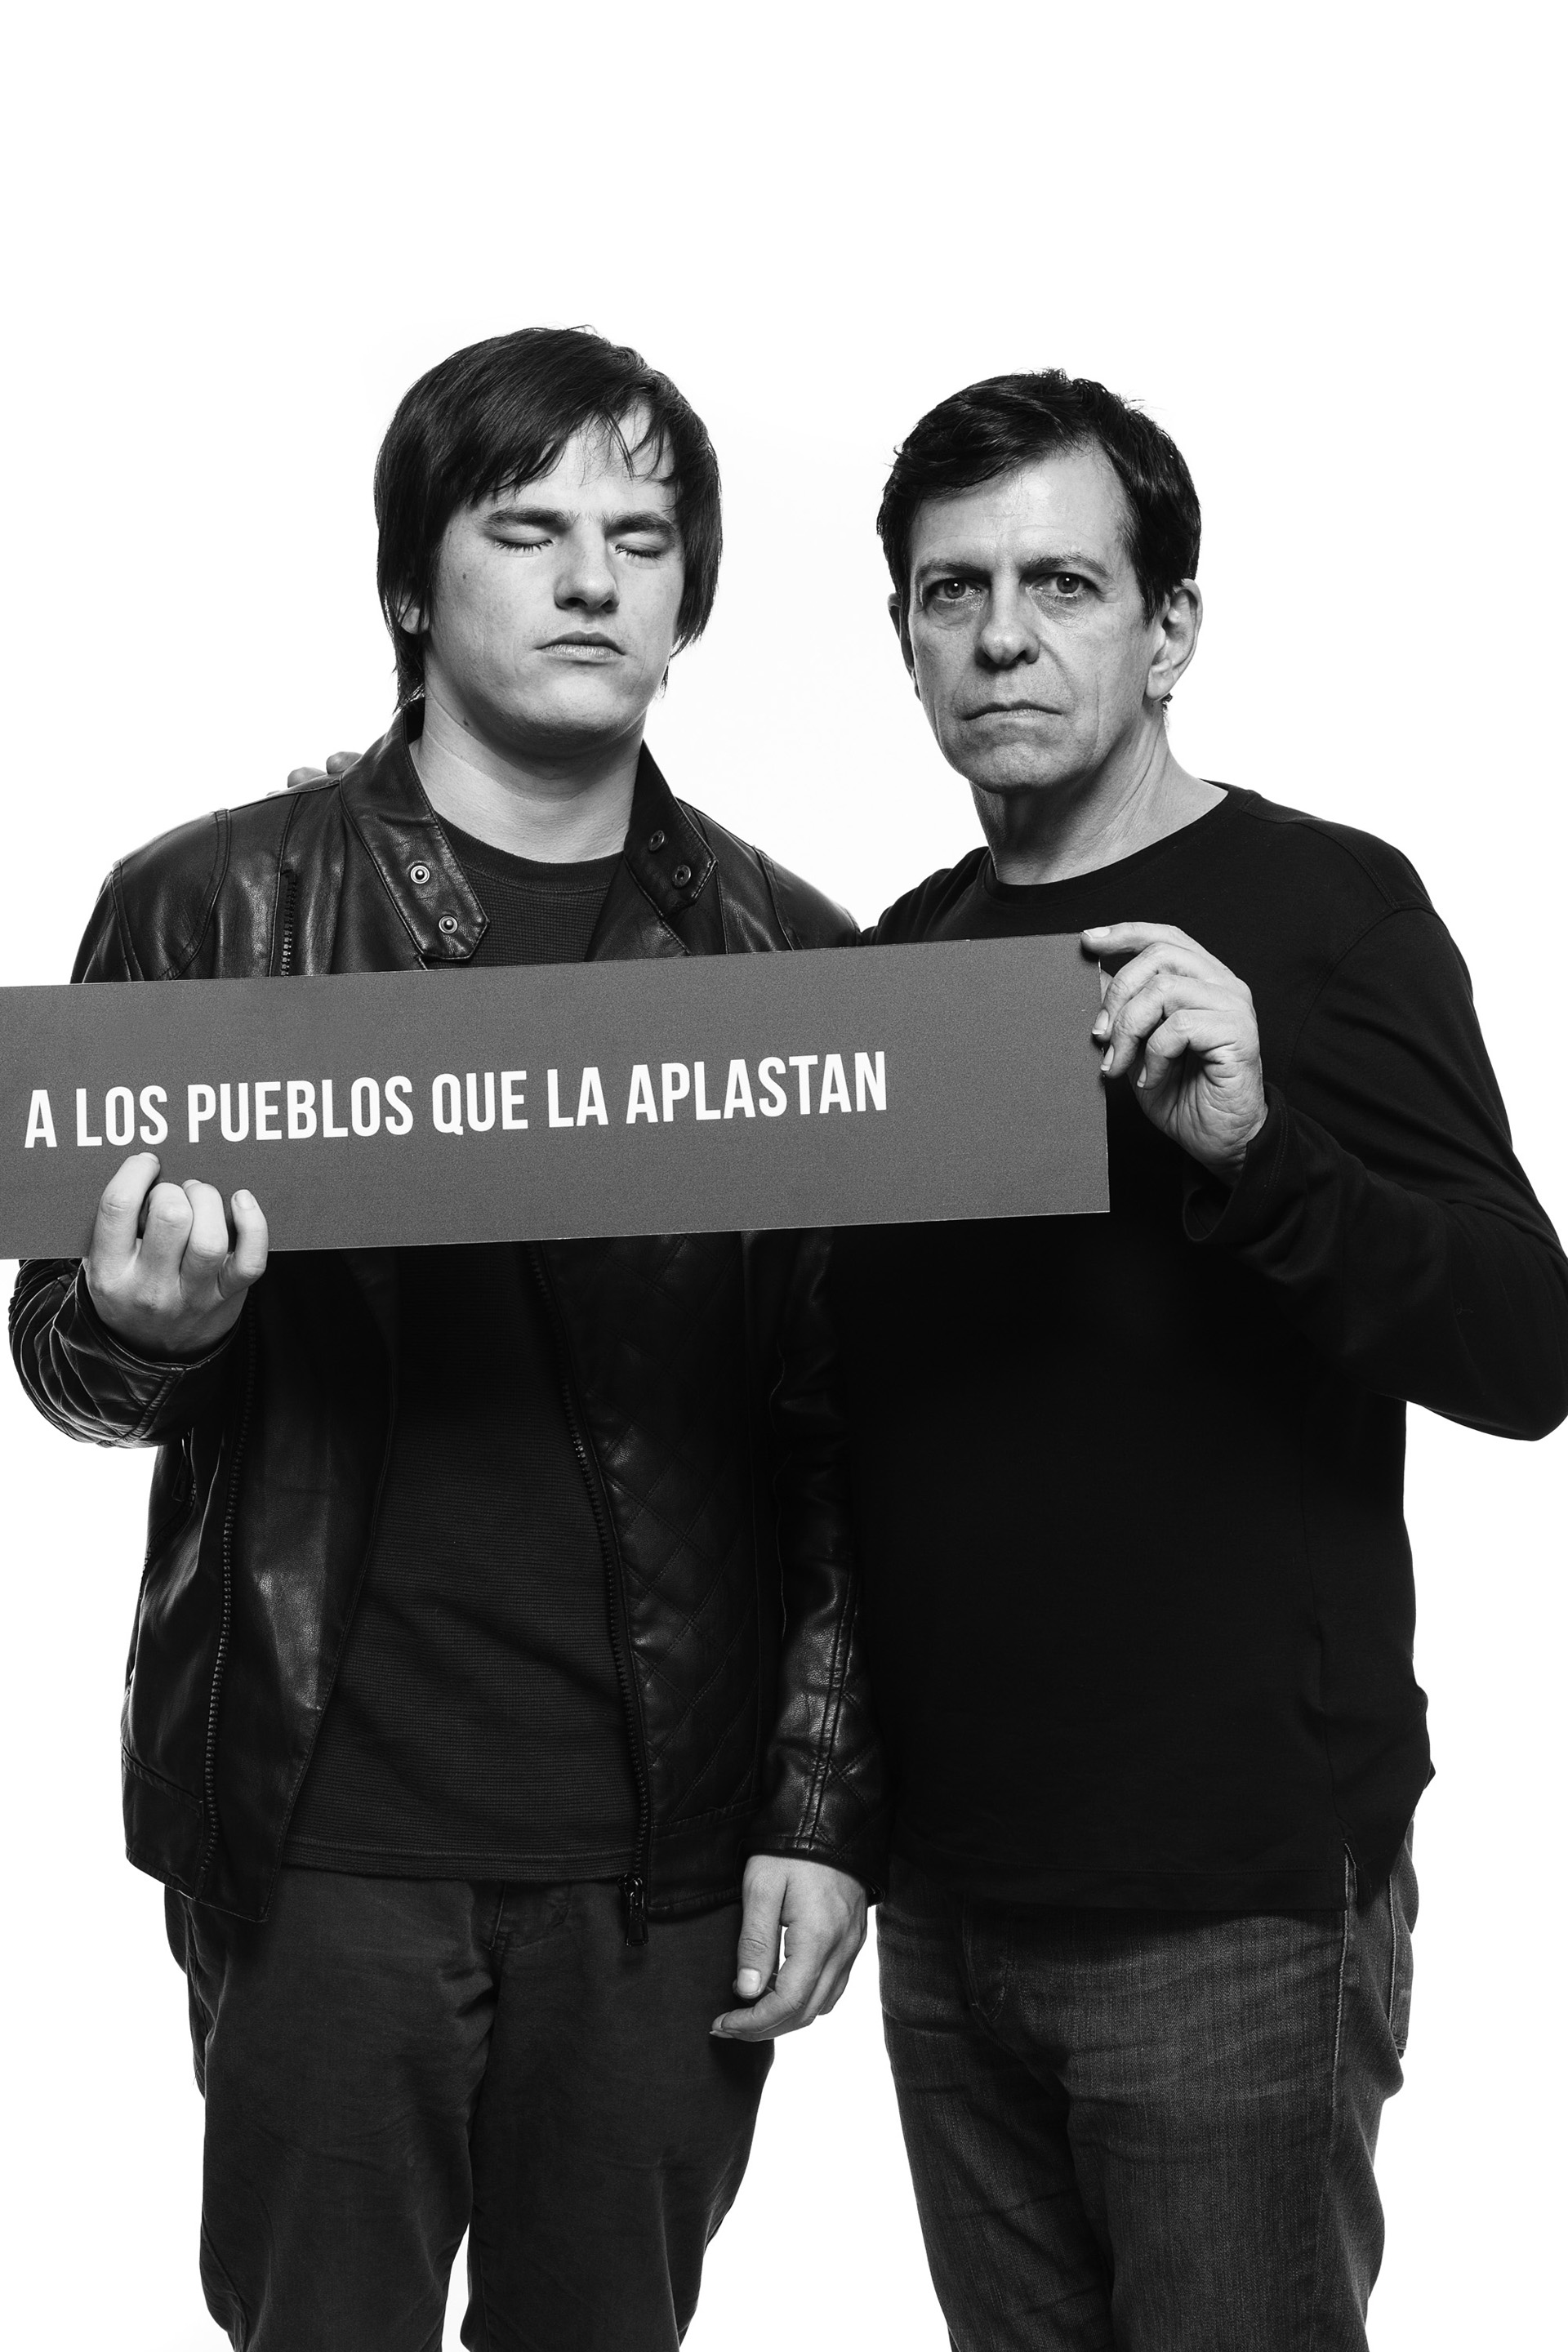 Guillermo Fernández y Nahuel Pennisi (Guido Chouela)